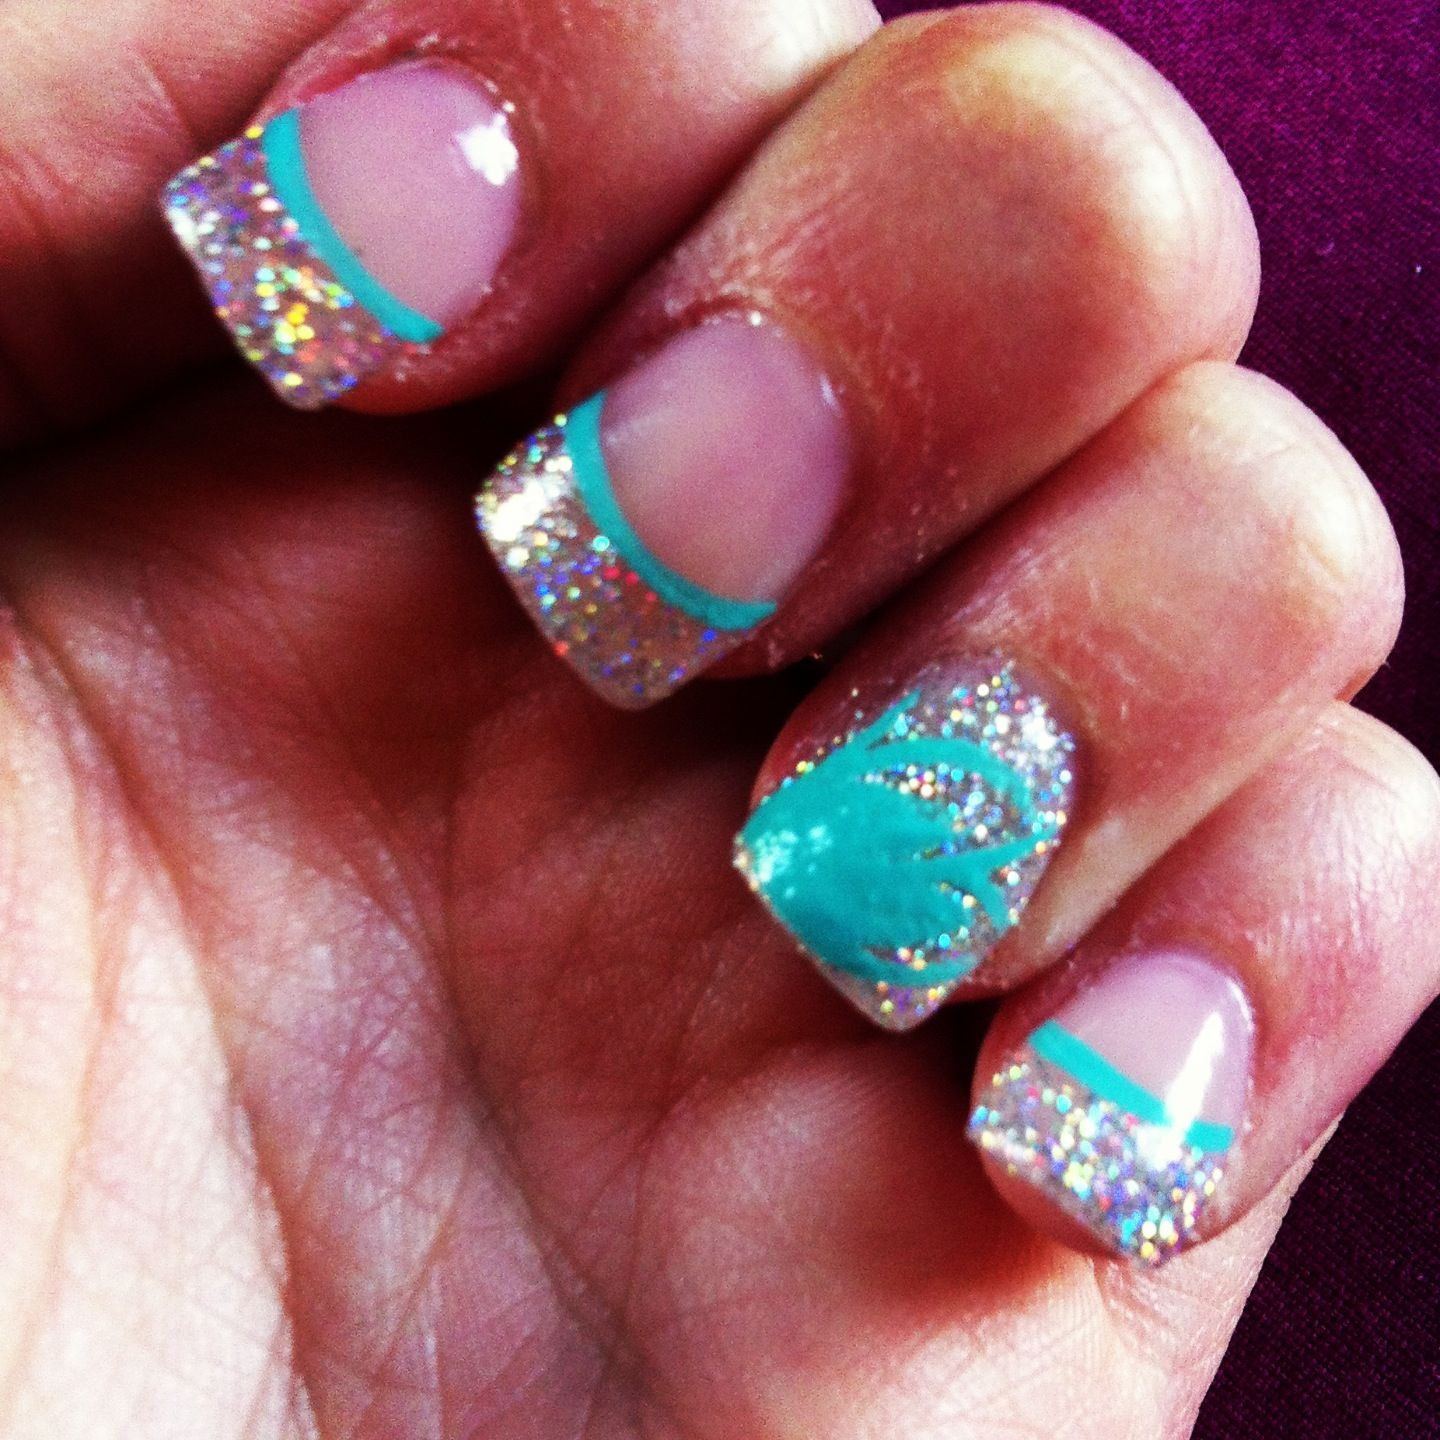 Silver sparkles tip with teal design (: acrylic nails - Prom Mails! Silver Sparkles Tip With Teal Design (: Acrylic Nails